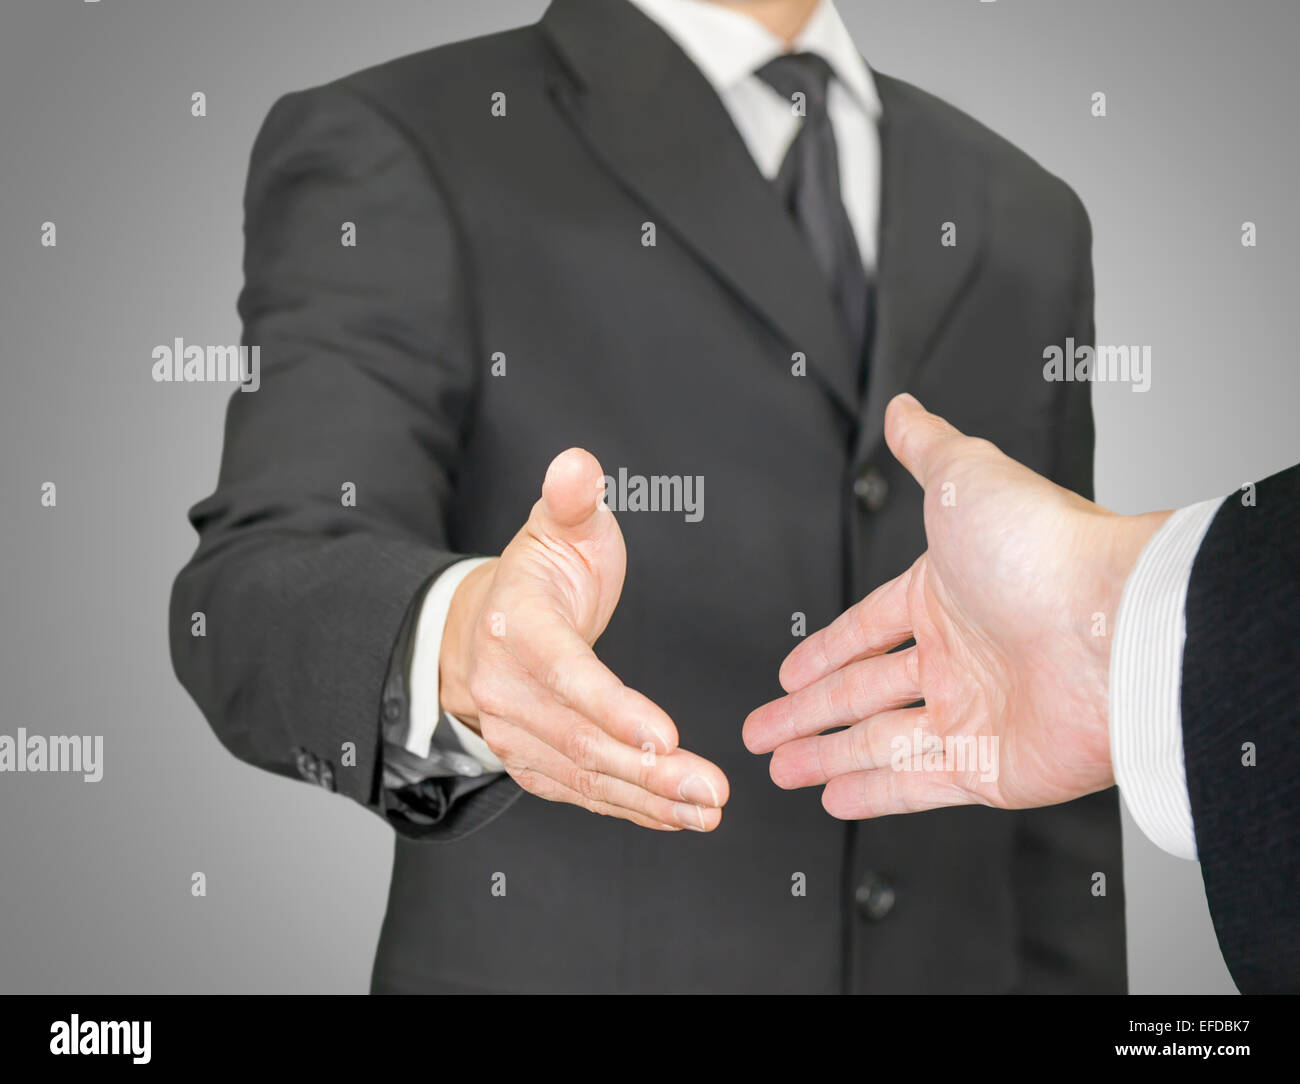 Business handshake, point of view composition - Stock Image